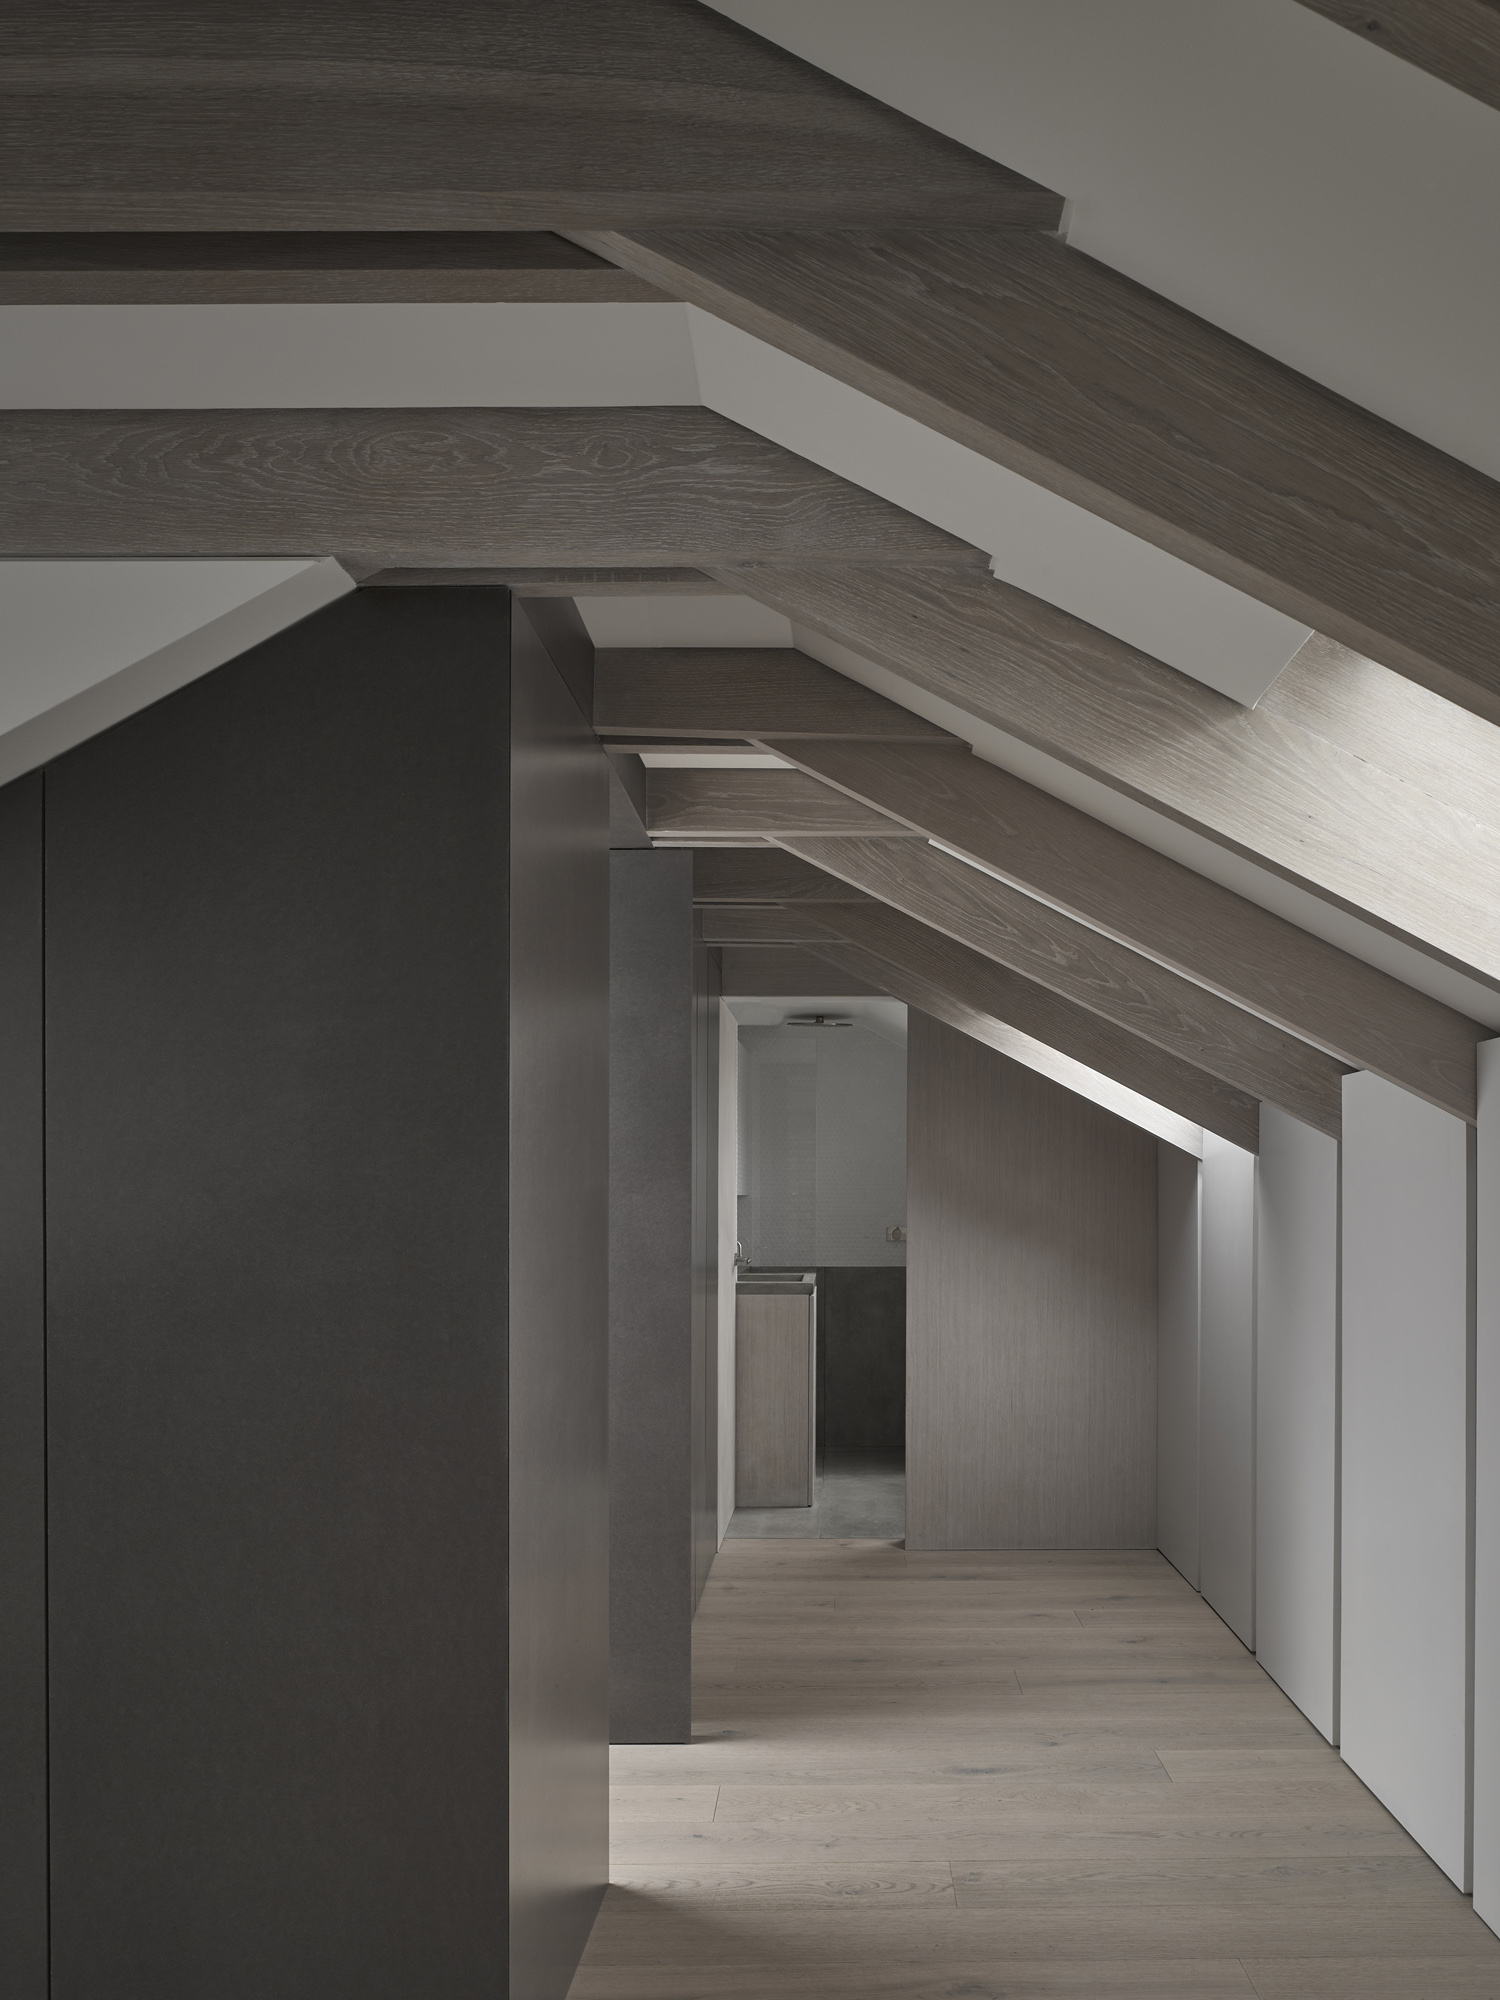 reveal in roof-con_form_architects_05.jpg